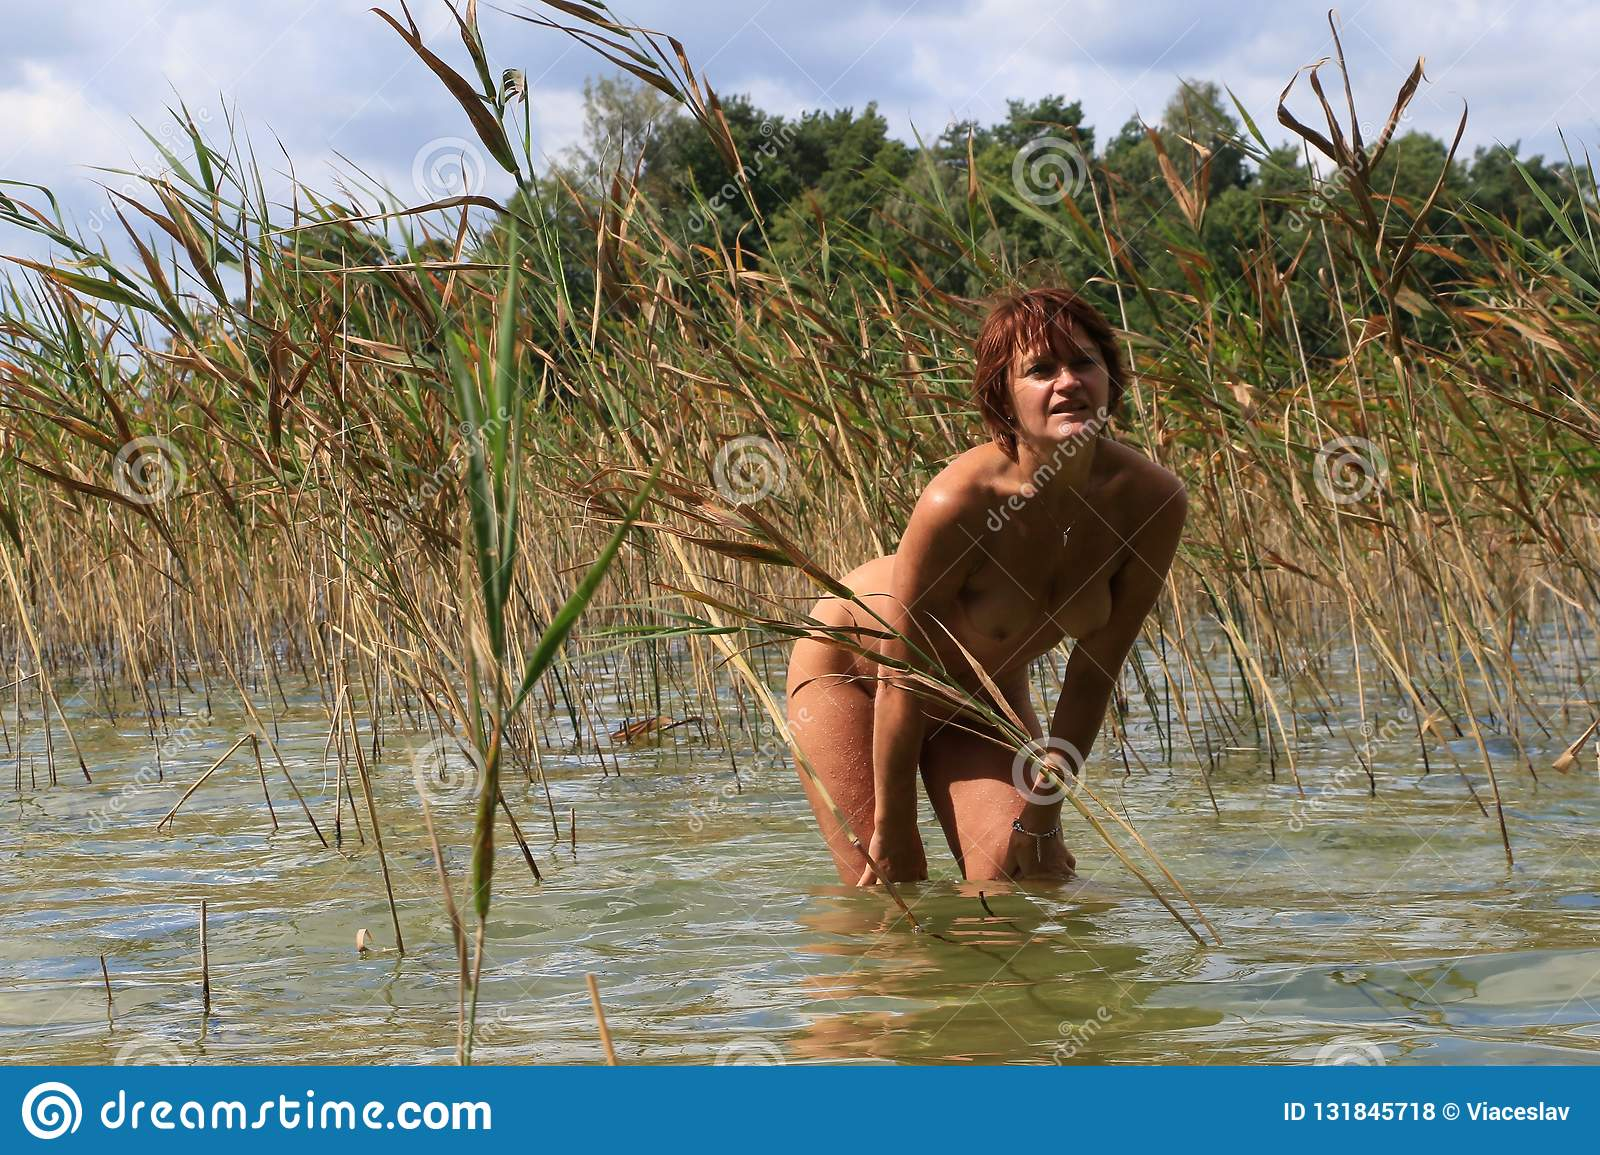 Nude lake Another Day